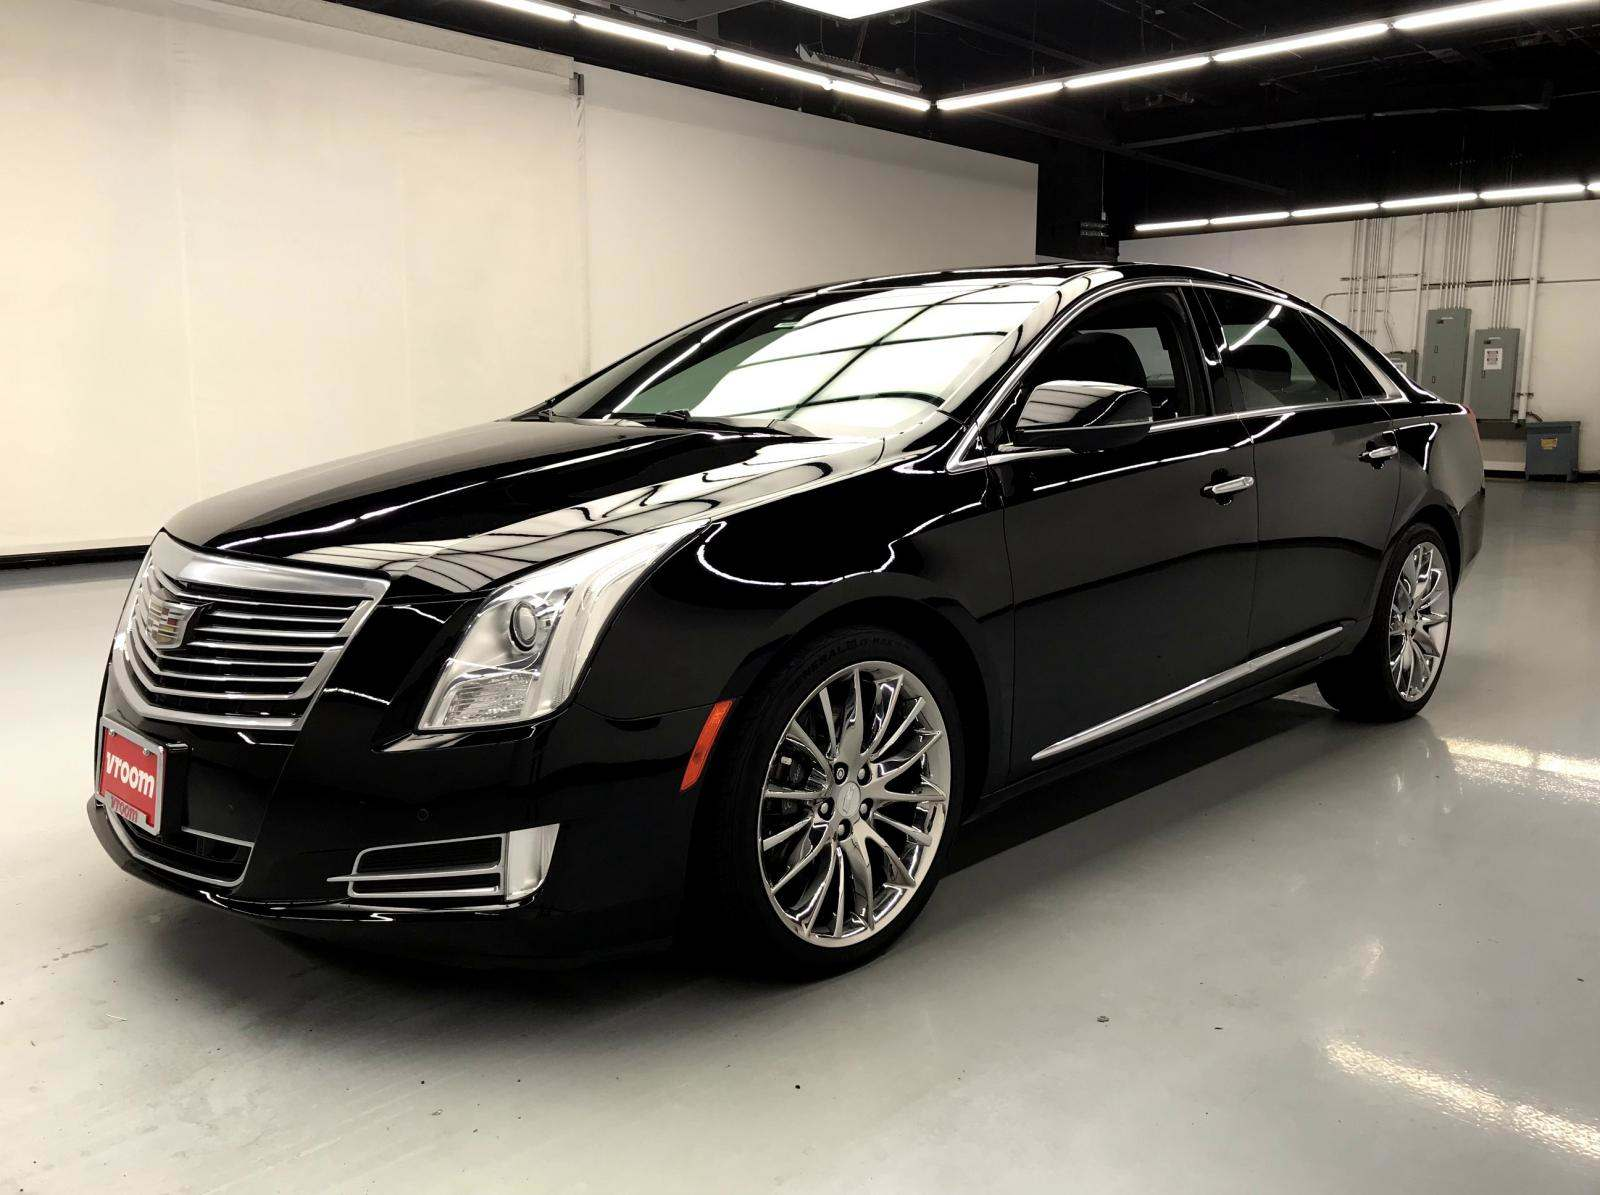 Xts For Sale >> Used 2016 Cadillac Xts For Sale 29 070 Vroom